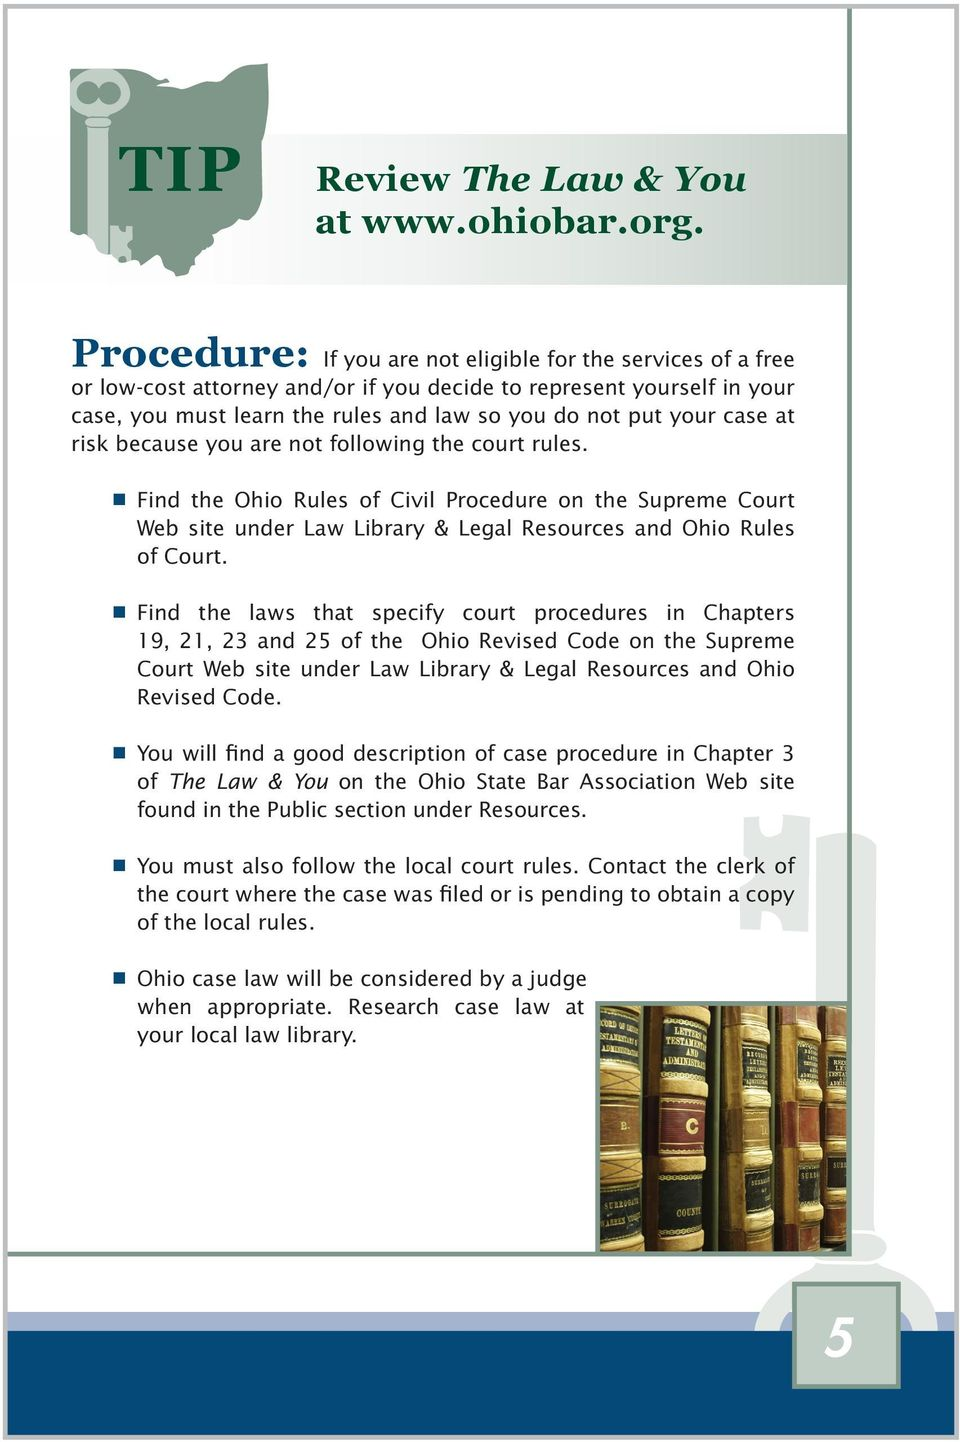 case at risk because you are not following the court rules. Find the Ohio Rules of Civil Procedure on the Supreme Court Web site under Law Library & Legal Resources and Ohio Rules of Court.